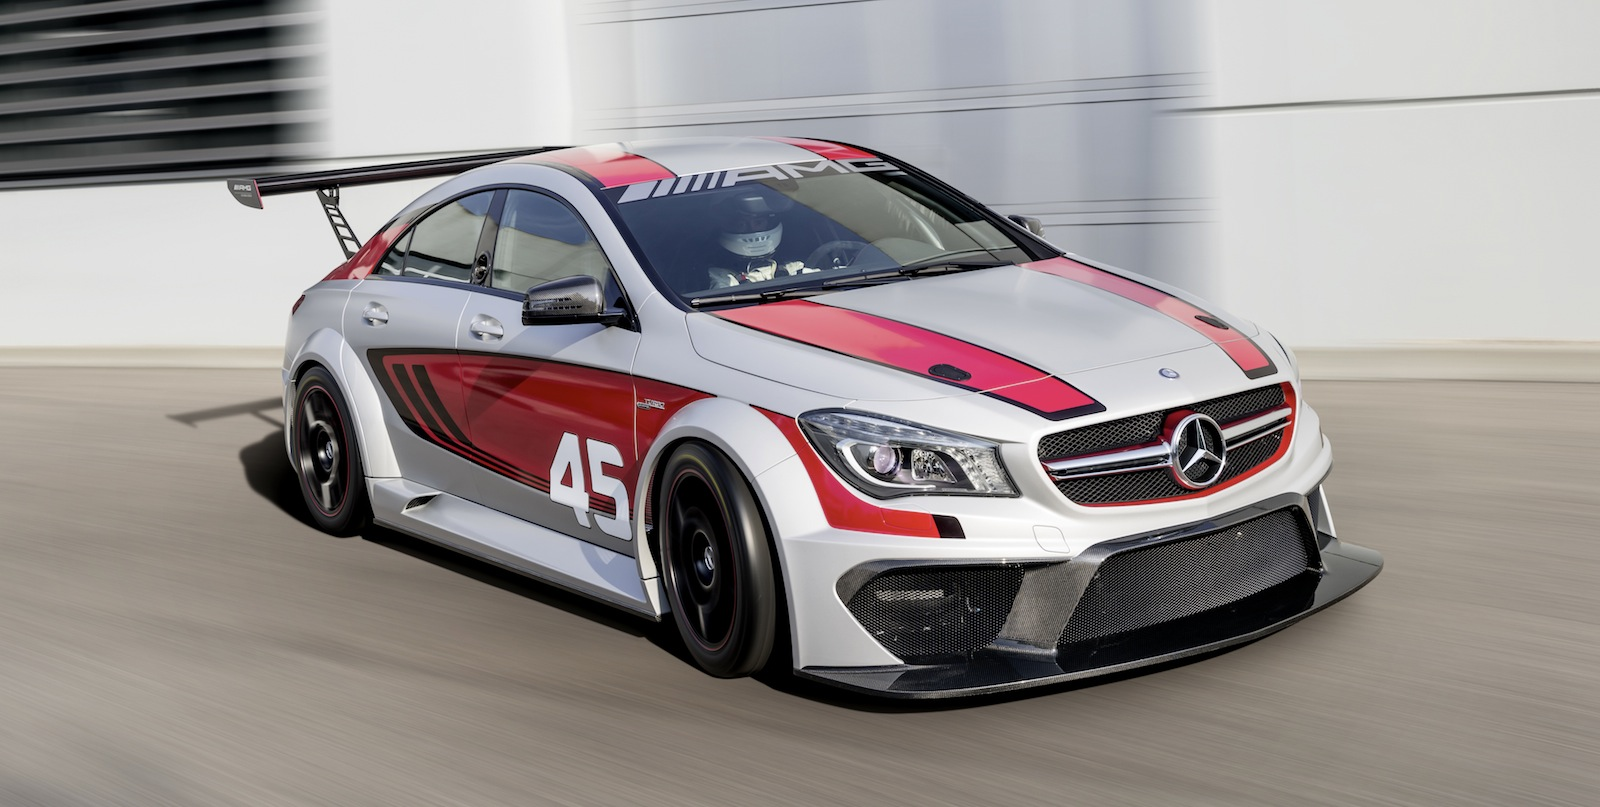 Mercedes Benz Cla 45 Amg Racecar Concept Un Espectacular HD Wallpapers Download free images and photos [musssic.tk]